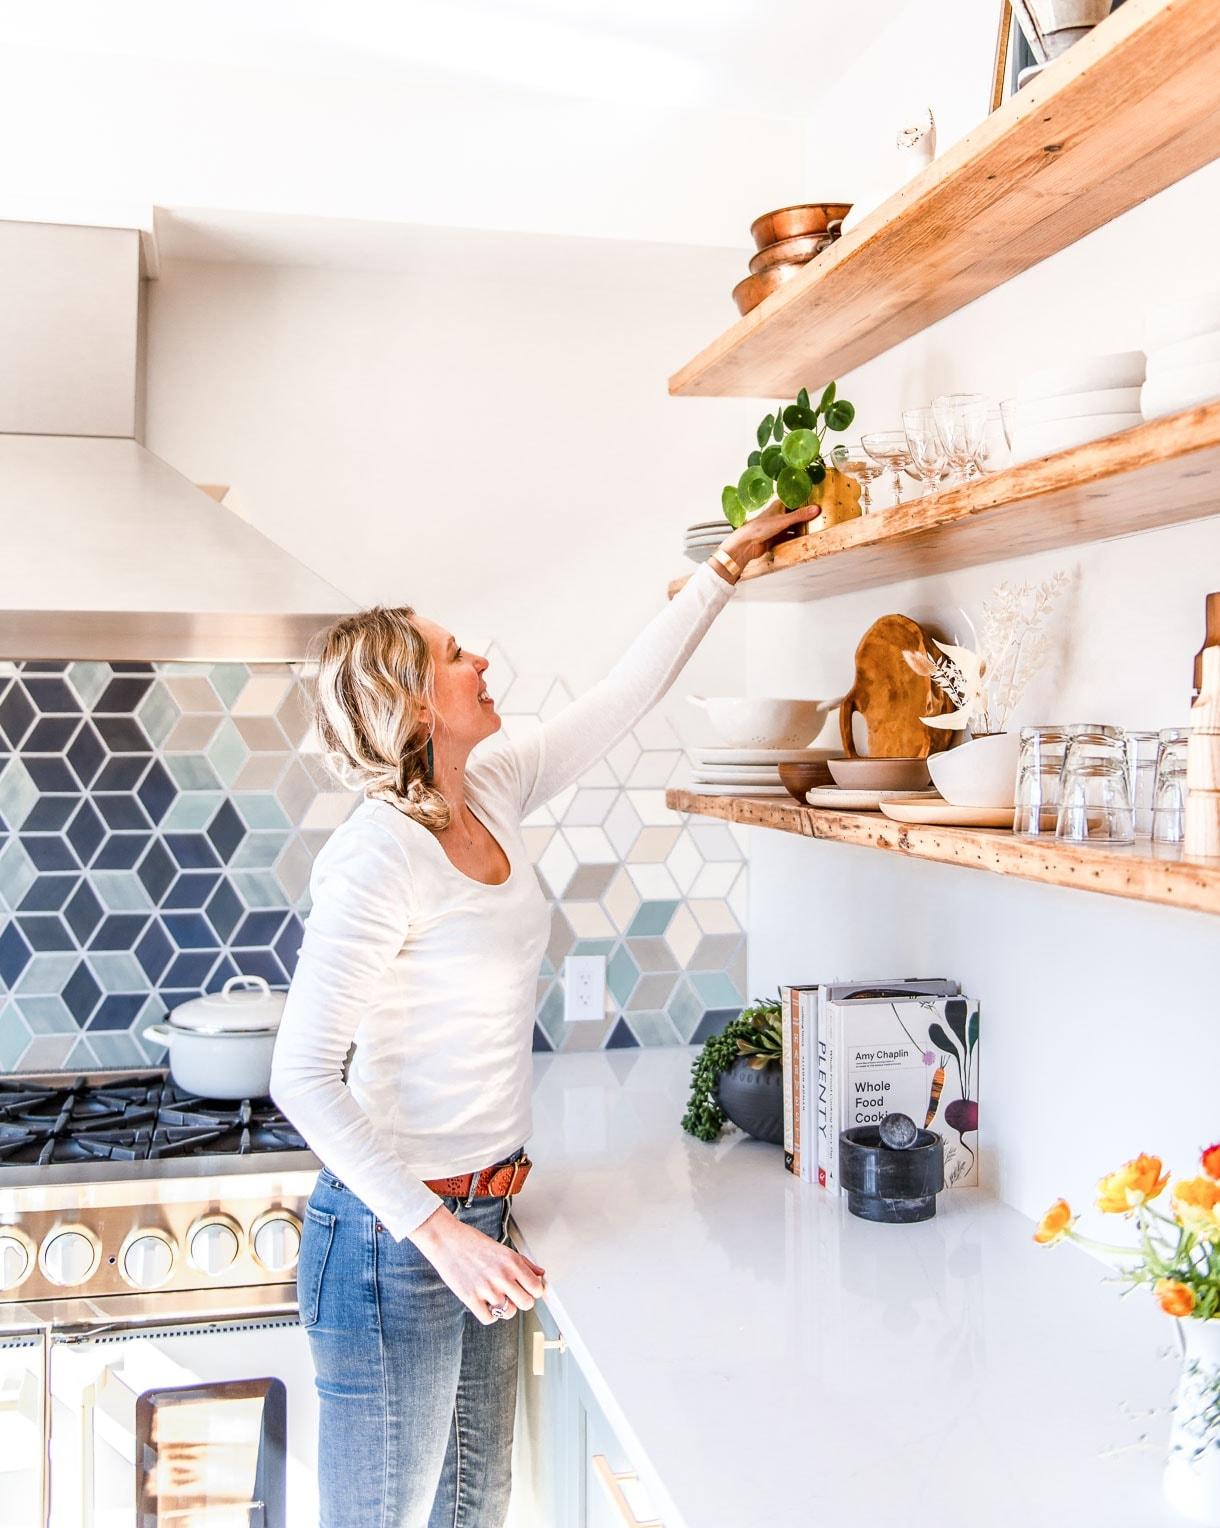 blond woman reaching to grab things off open shelving